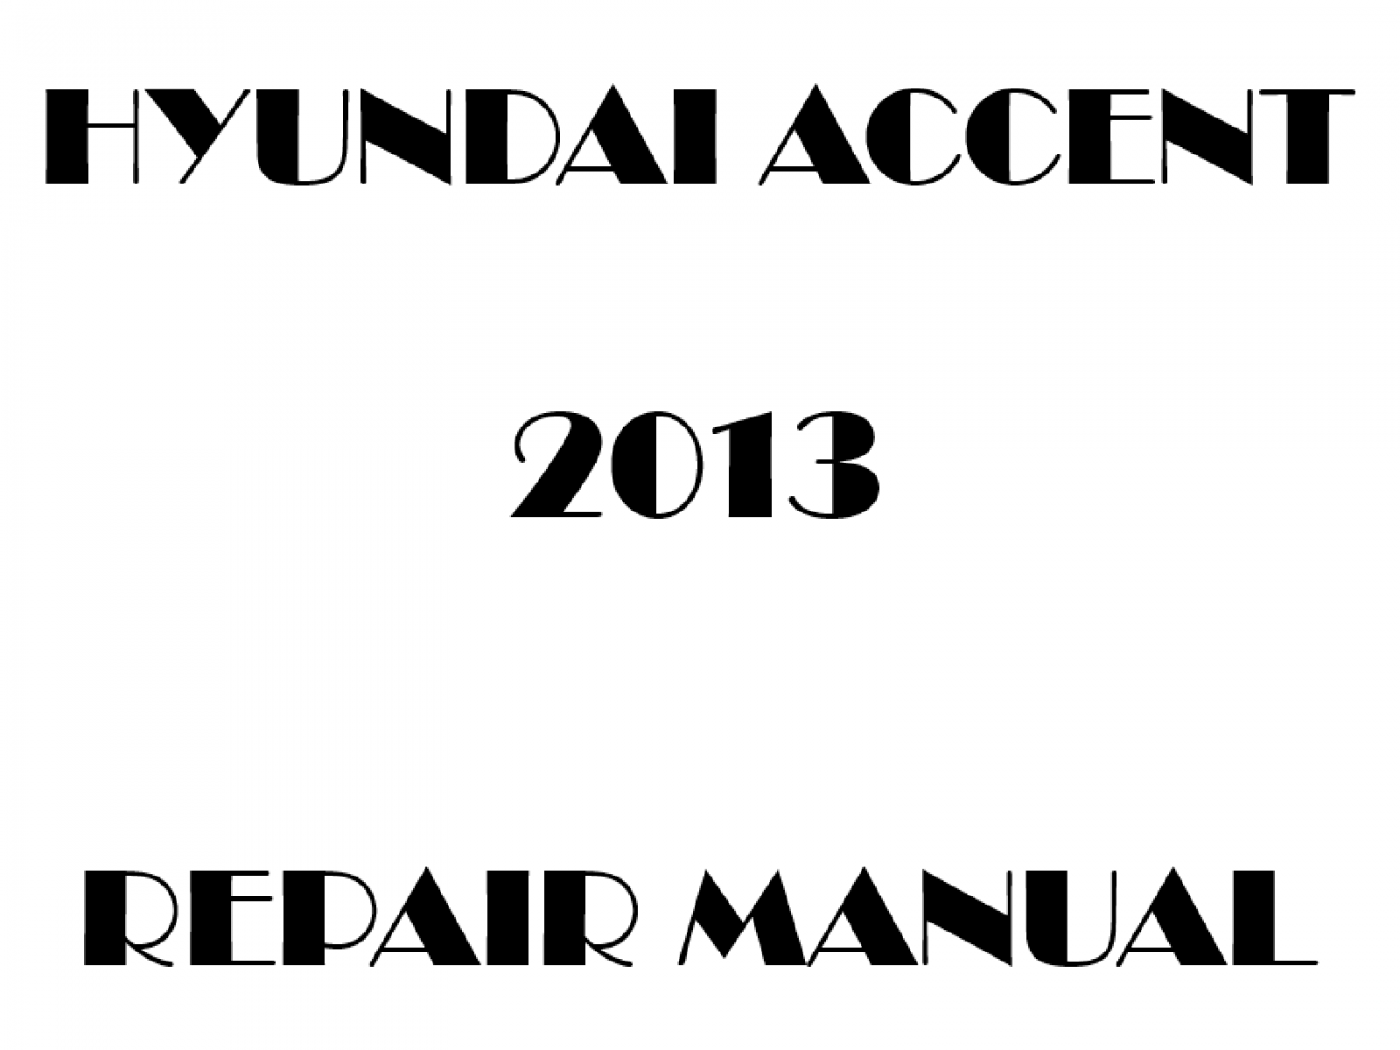 2013 Hyundai Accent repair manual